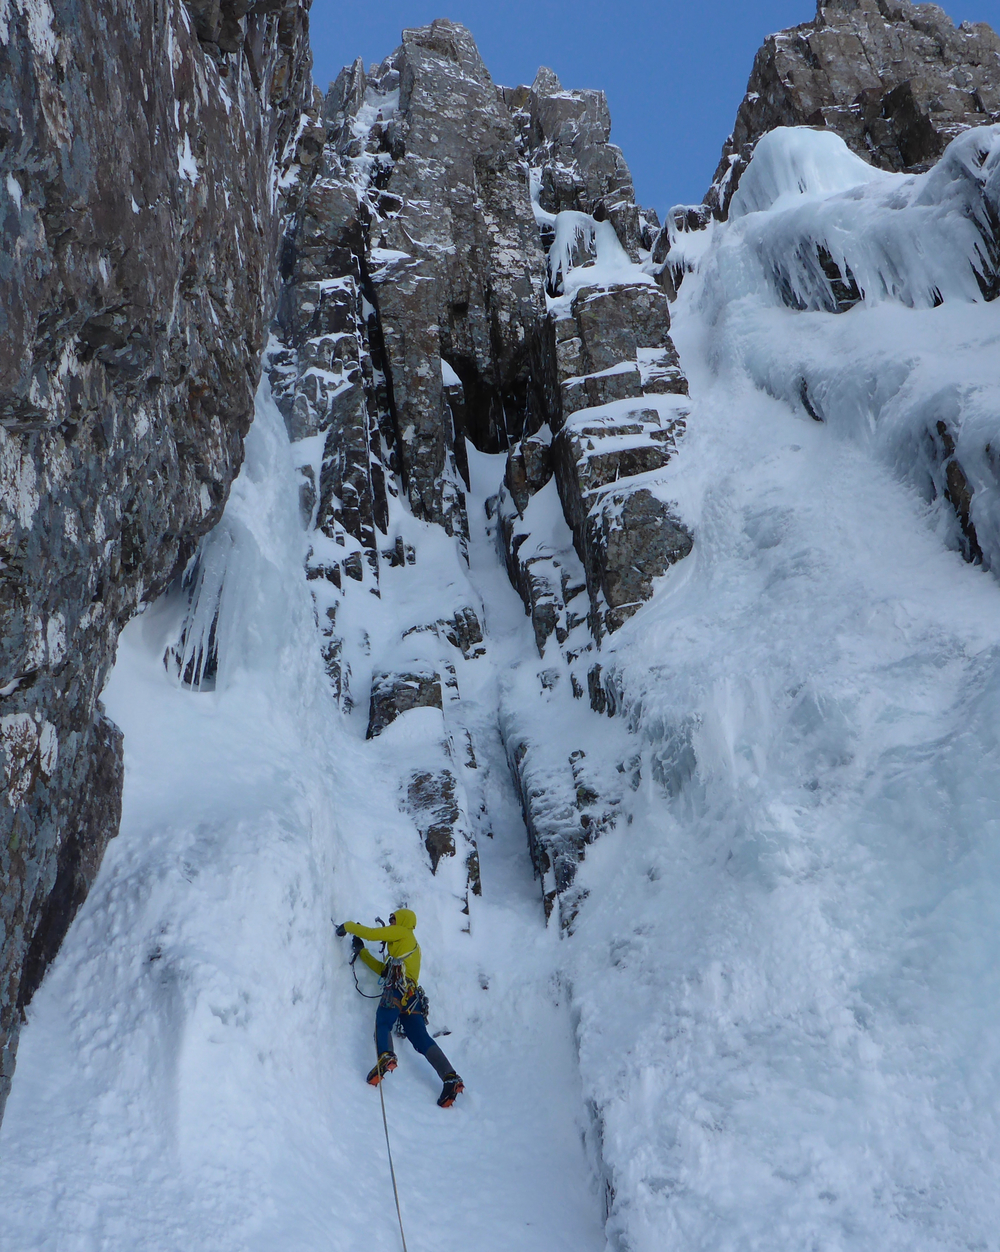 Setting off on the crux pitch of Boomer's Requiem